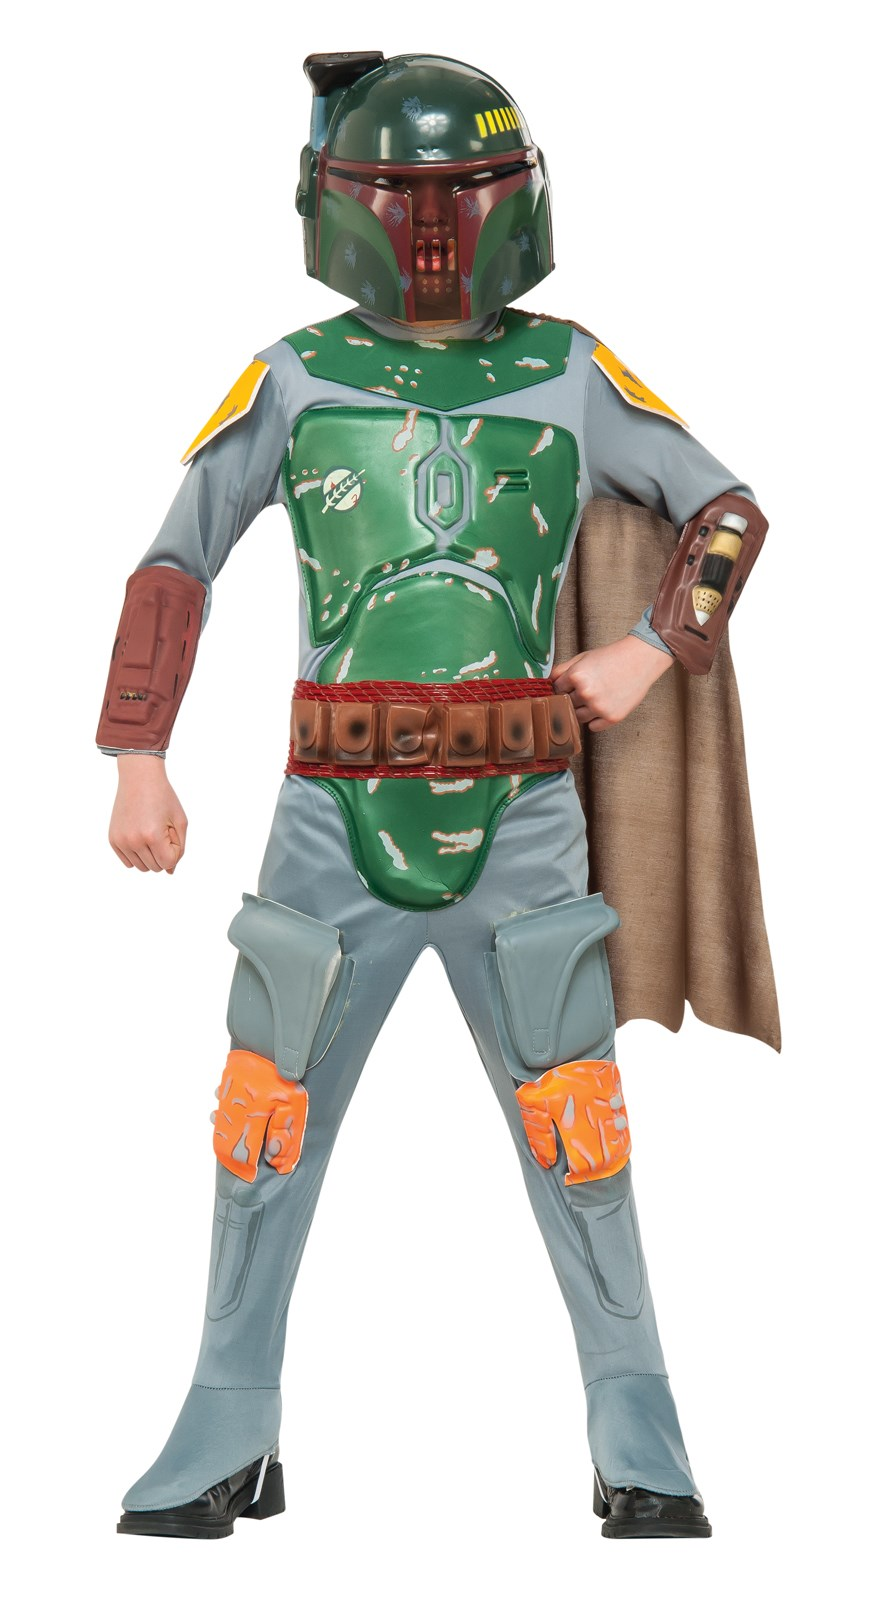 Star Wars Boba Fett Child Costume 4-6